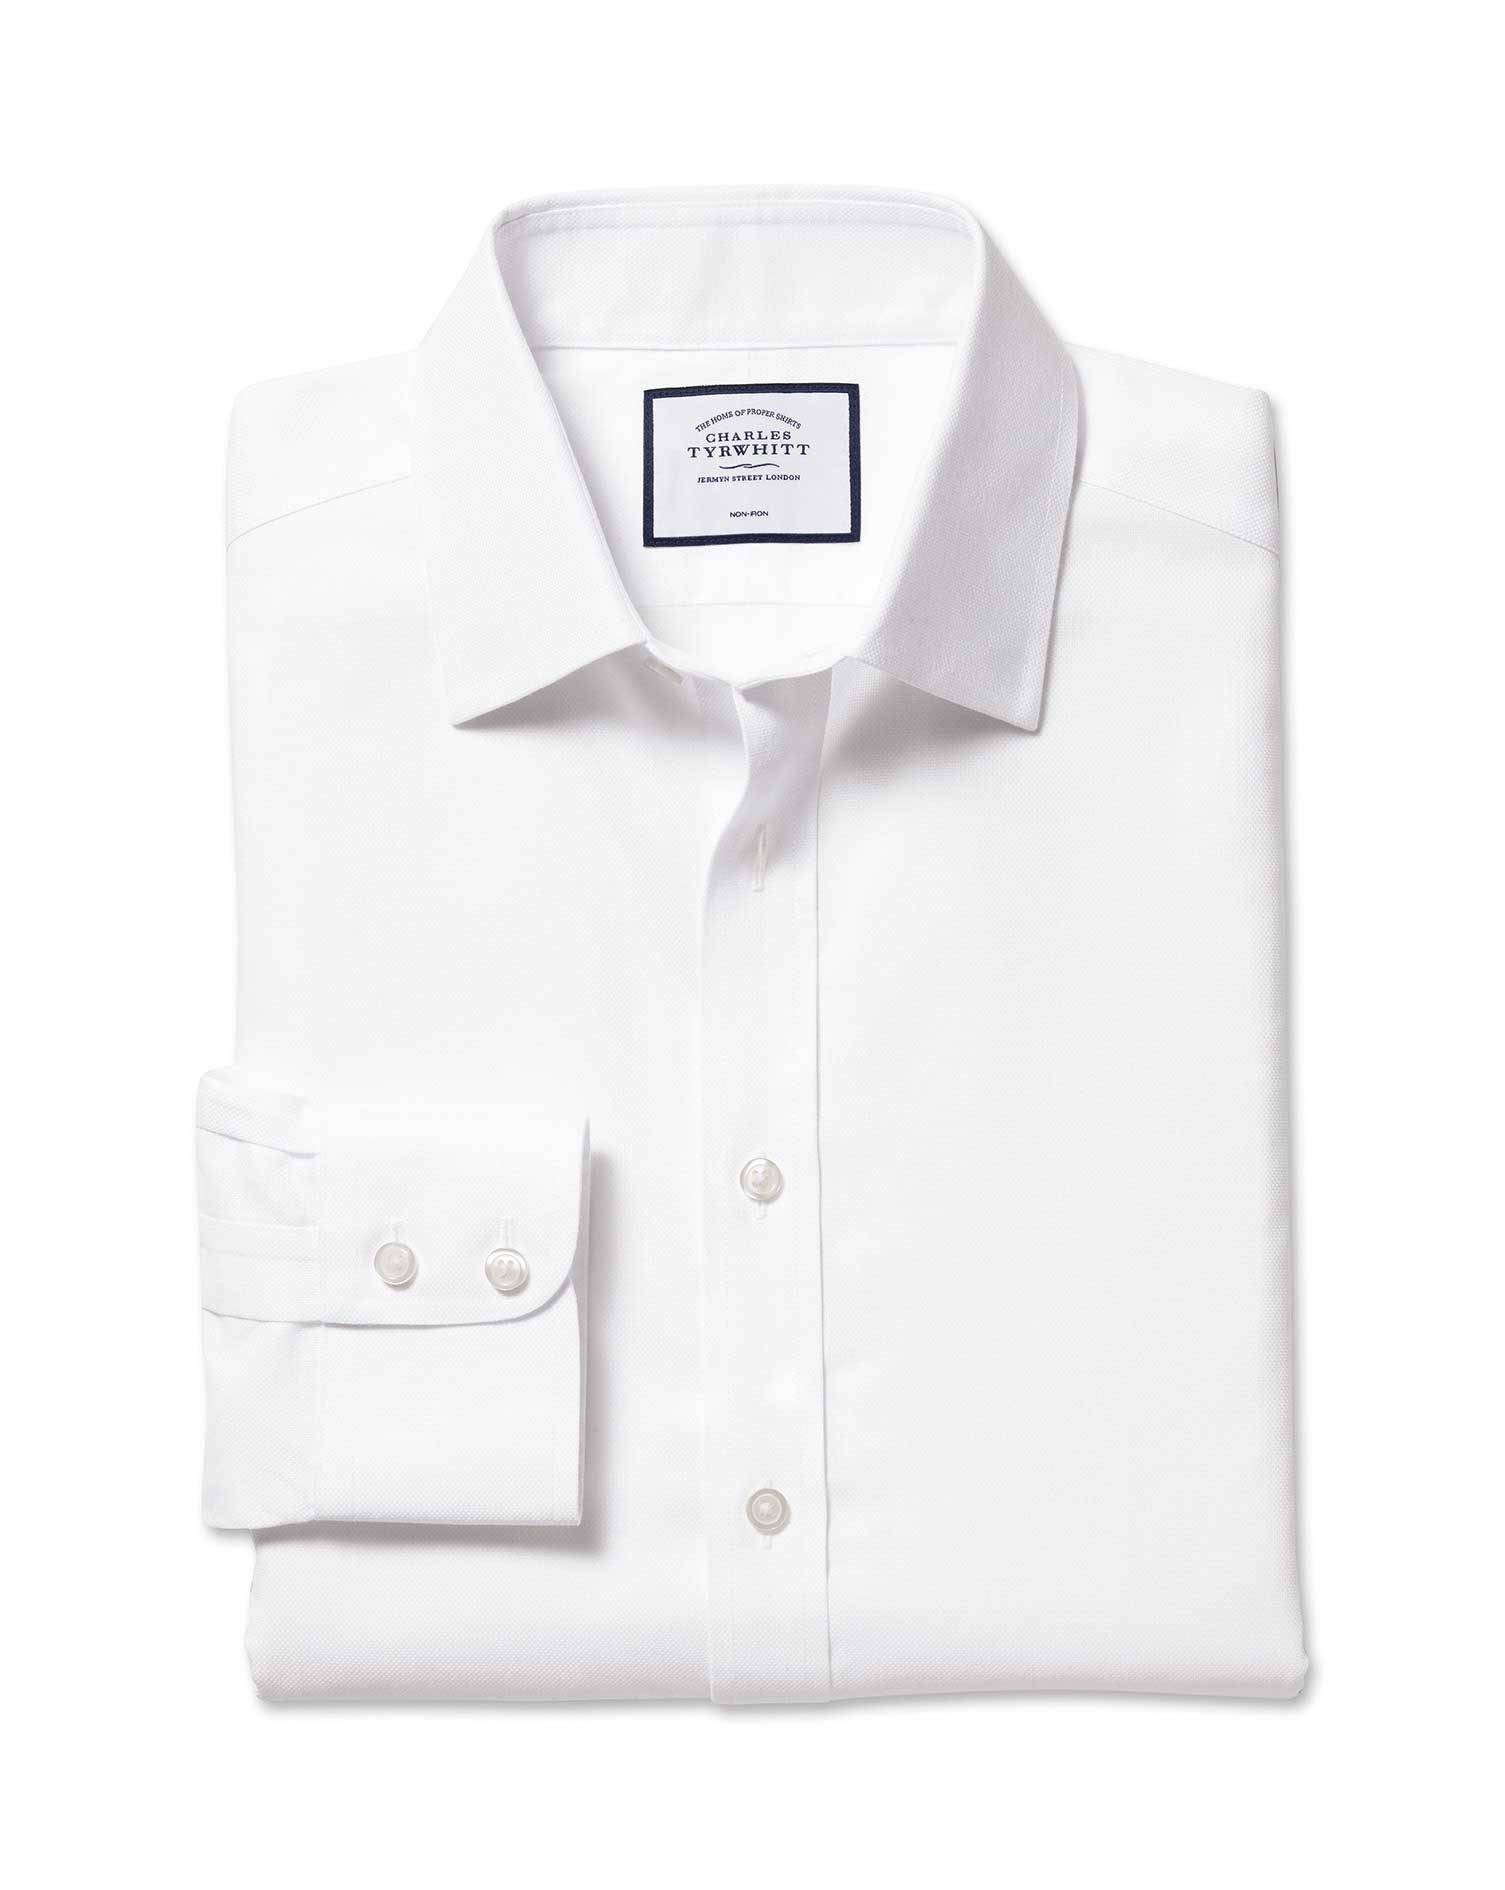 Extra Slim Fit Non-Iron Royal Panama White Cotton Formal Shirt Double Cuff Size 17/35 by Charles Tyr